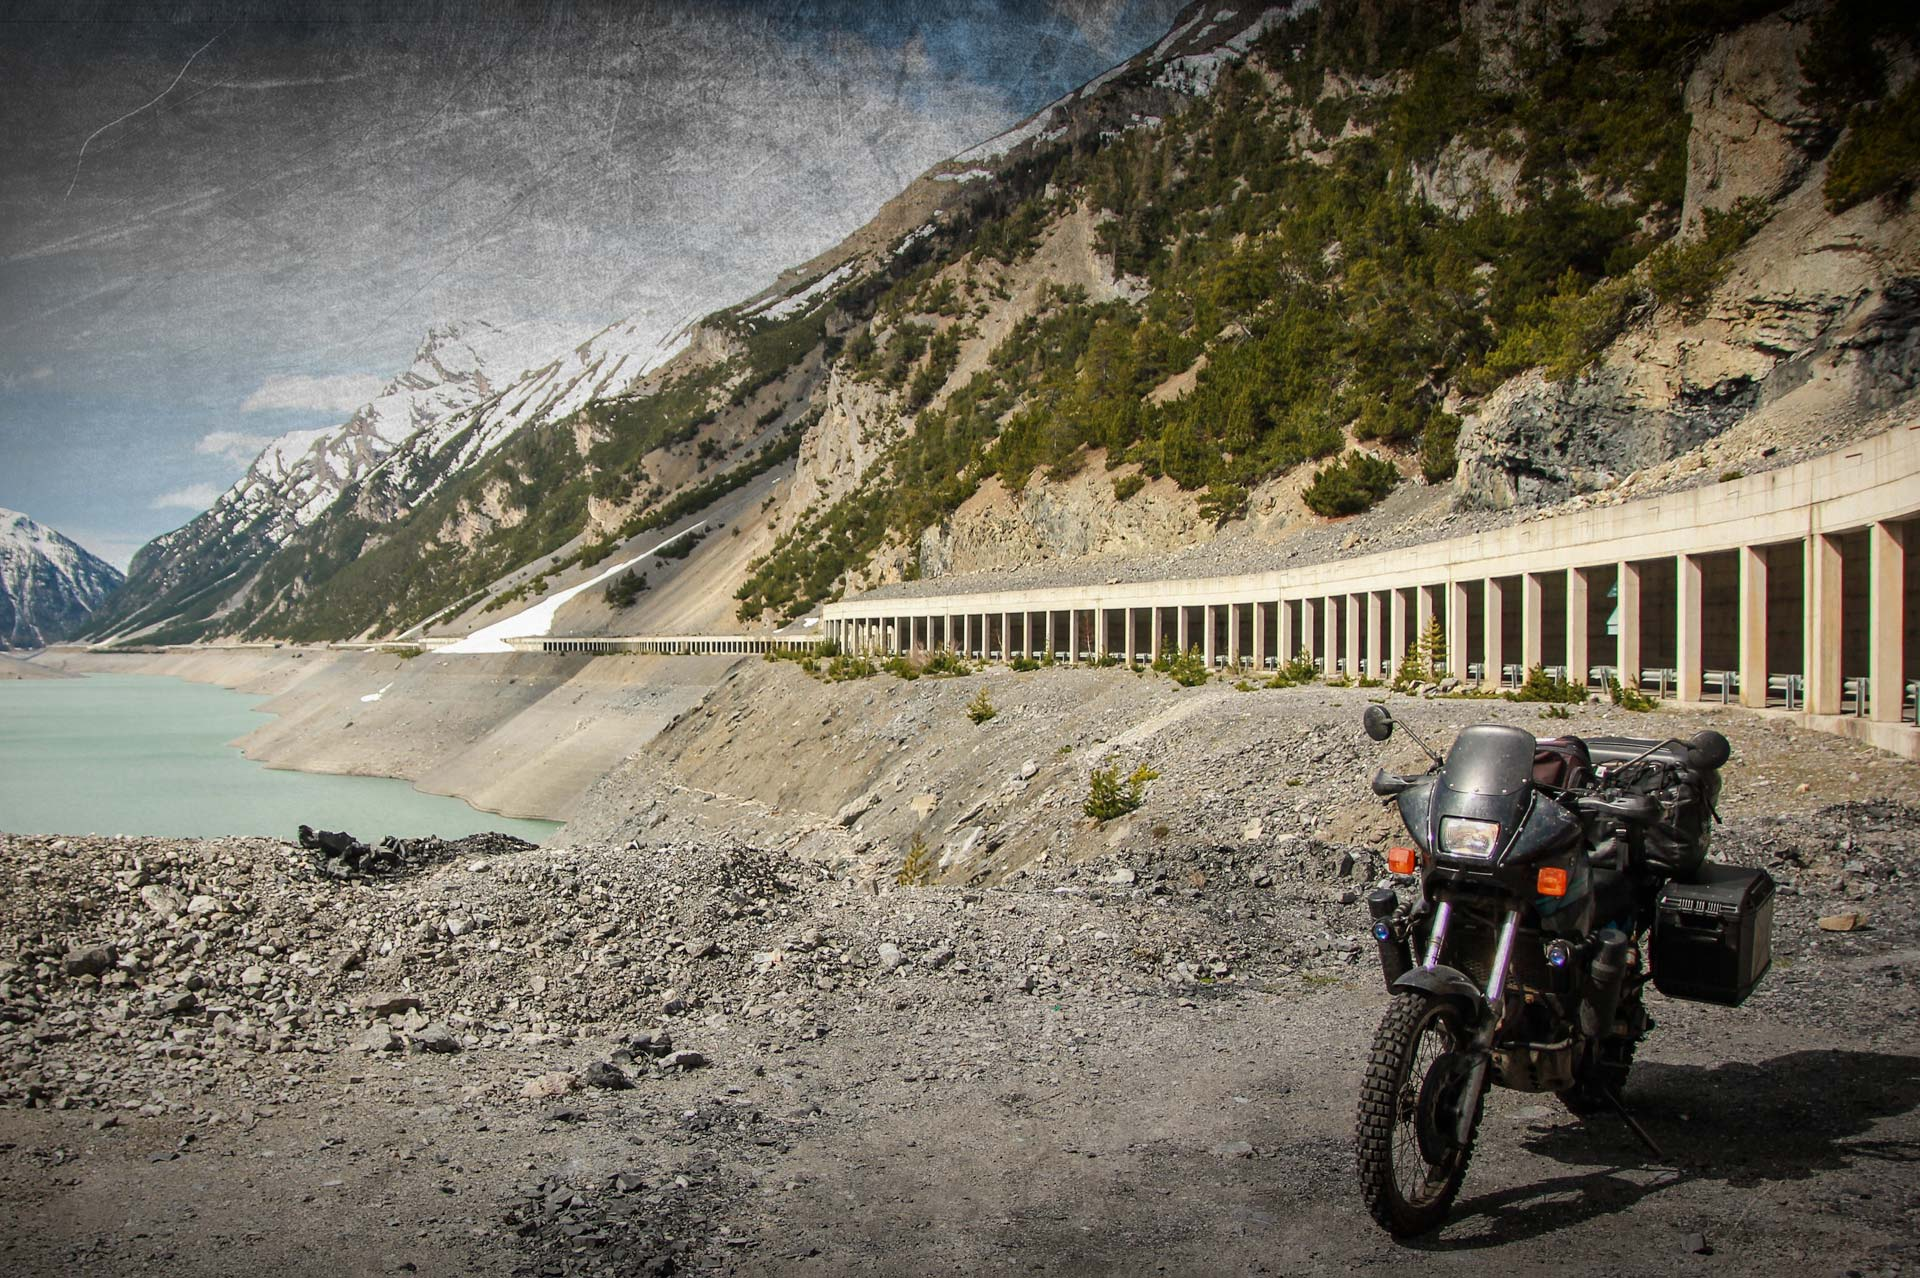 RIDE THE GREAT ALPINE PASSES